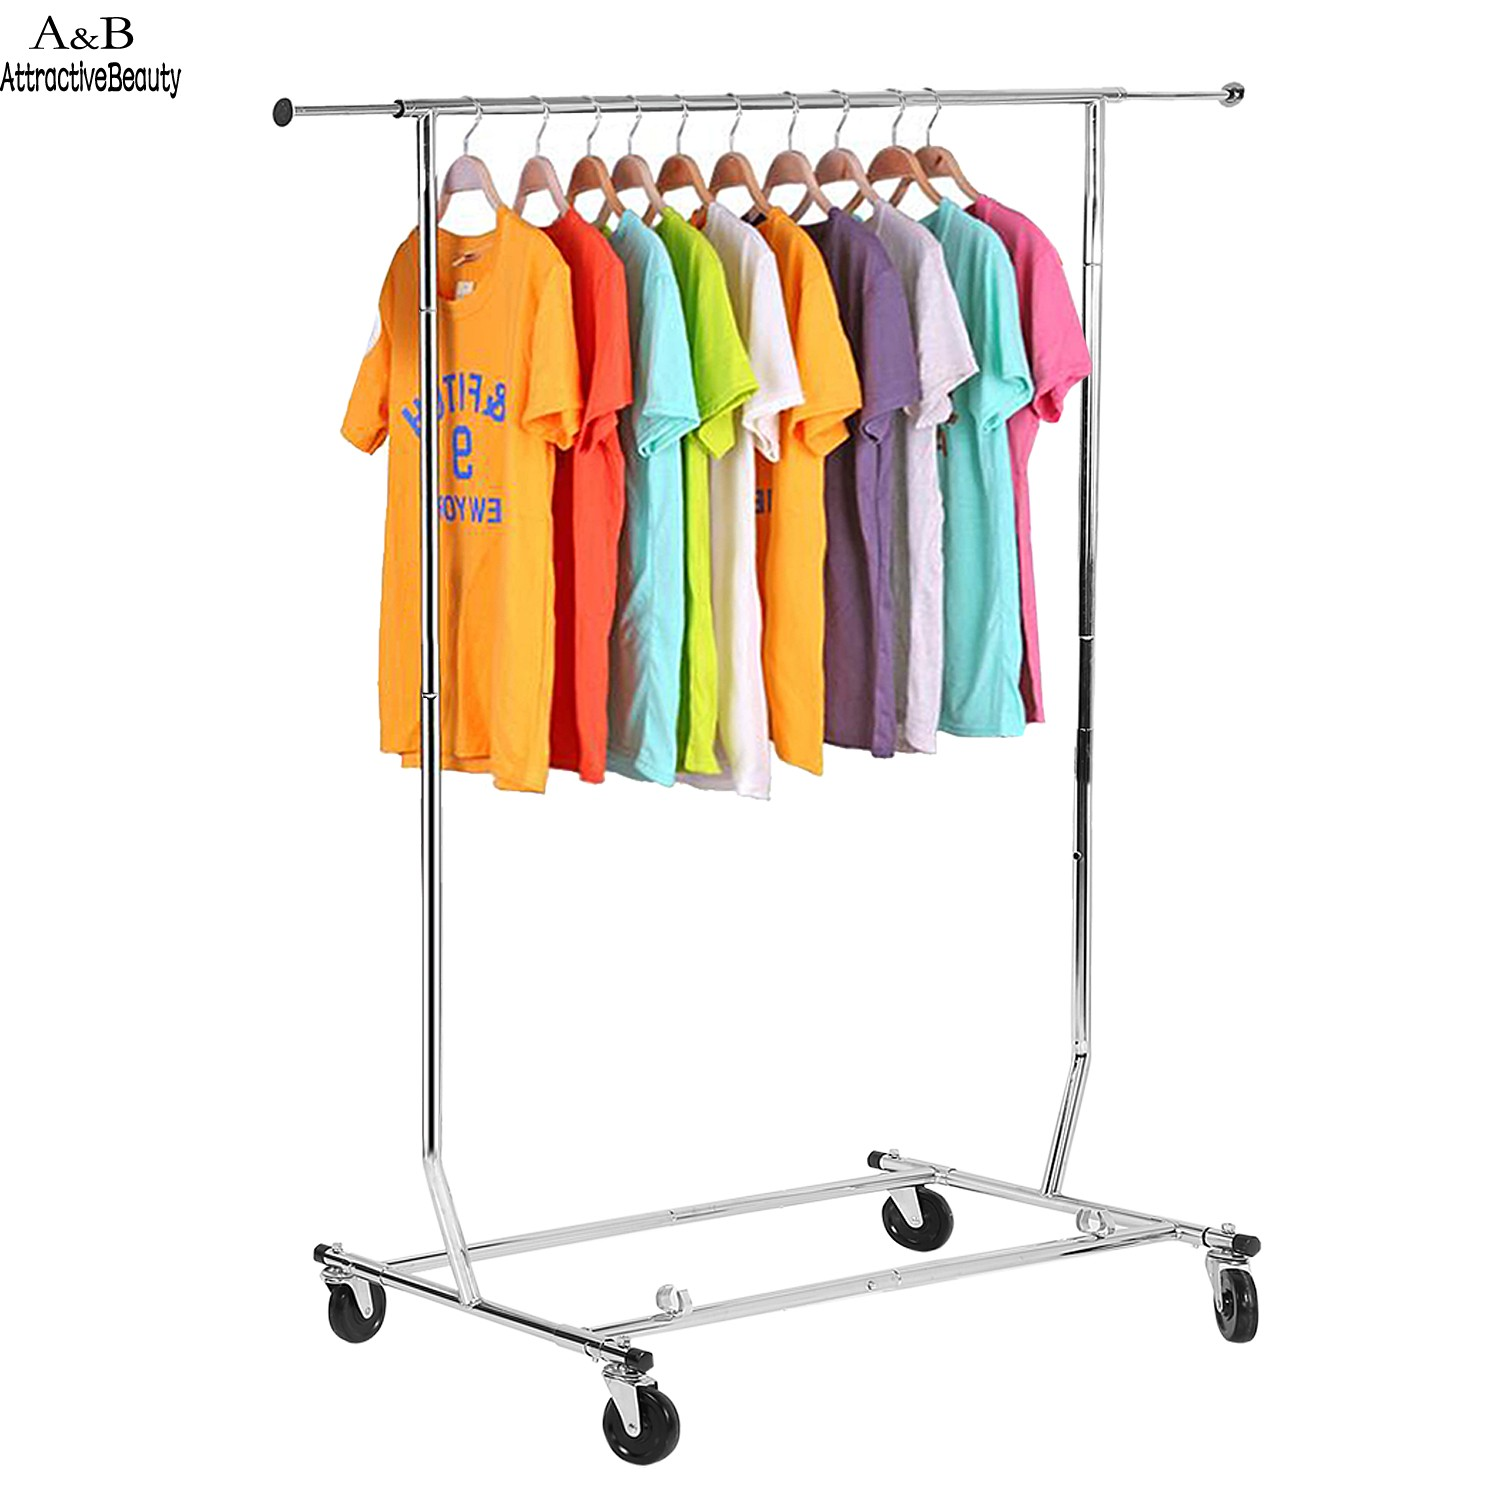 homdox adjustable rolling steel clothes hanger organizer garment rack heavy duty rail with wheel n20 - Clothes Racks